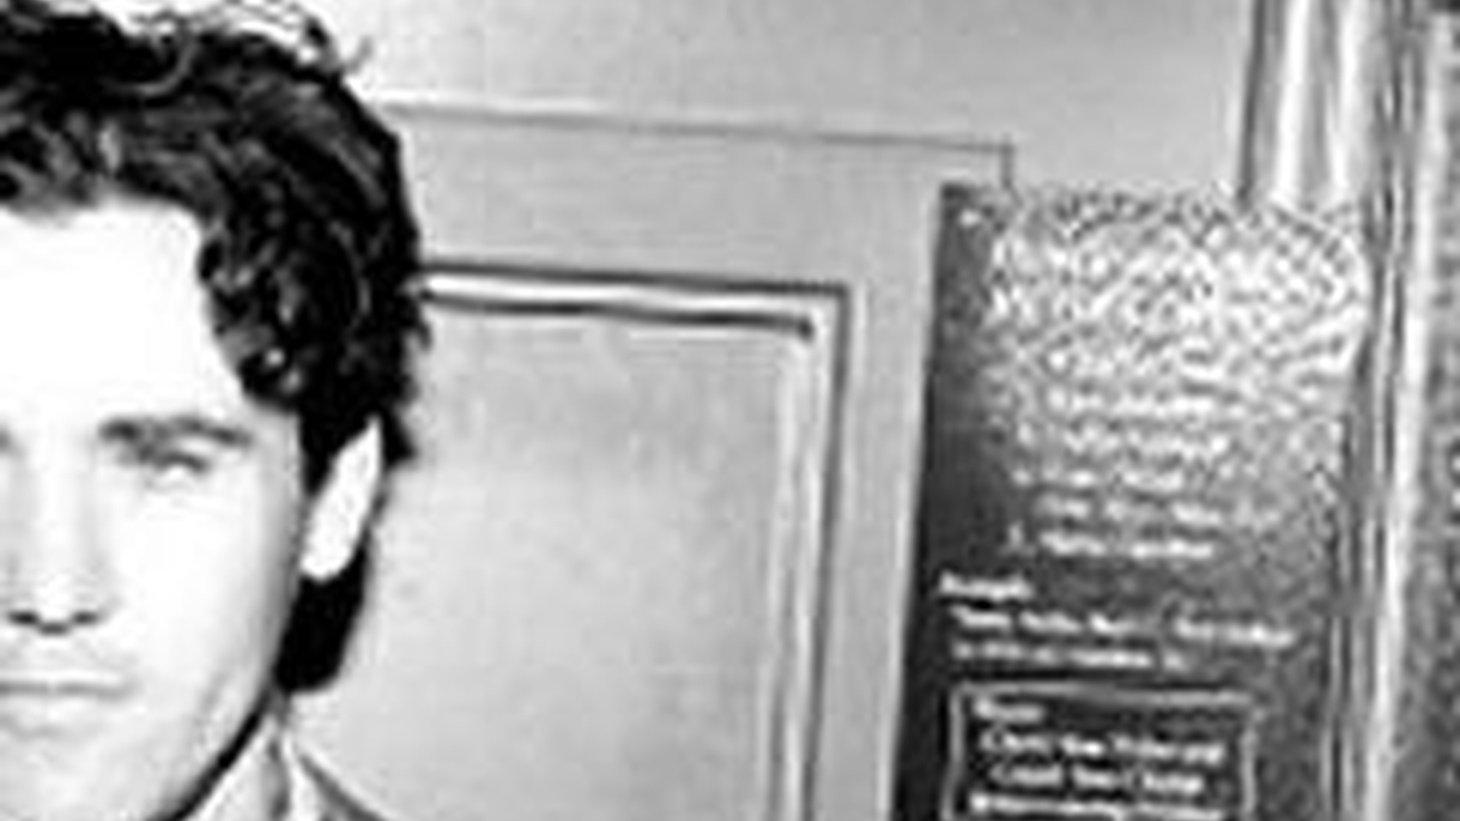 Chicago's Cass McCombs sings moody and funny songs on Morning Becomes Eclectic at 11:15am.